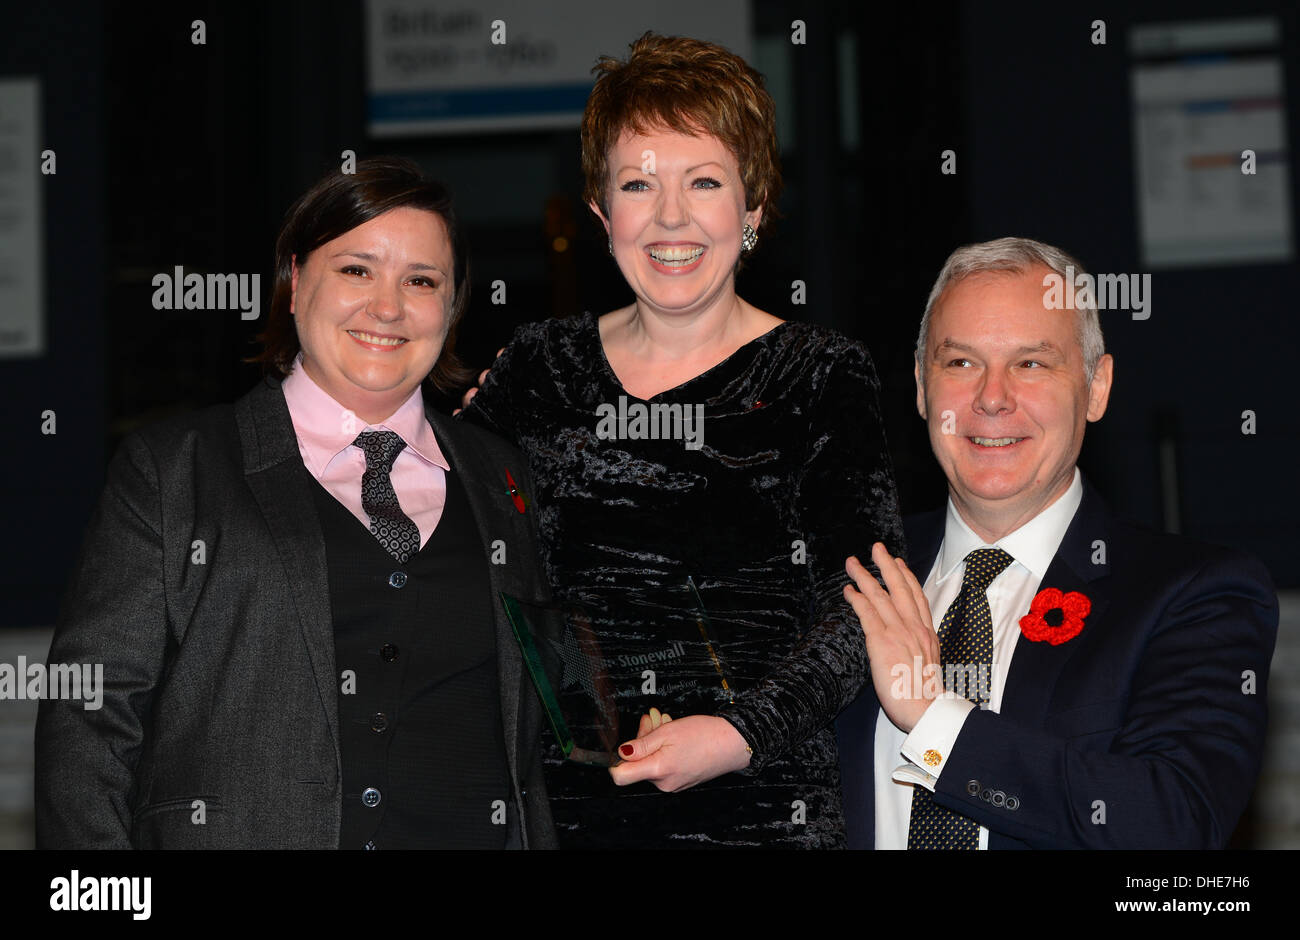 London, UK. 7th Nov 2013.  Baroness Stowell, Stonewall Politician Award of the year.Stonewall Awards 2013 taking place at the Victoria and Albert Museum. Credit:  See Li/Alamy Live News - Stock Image